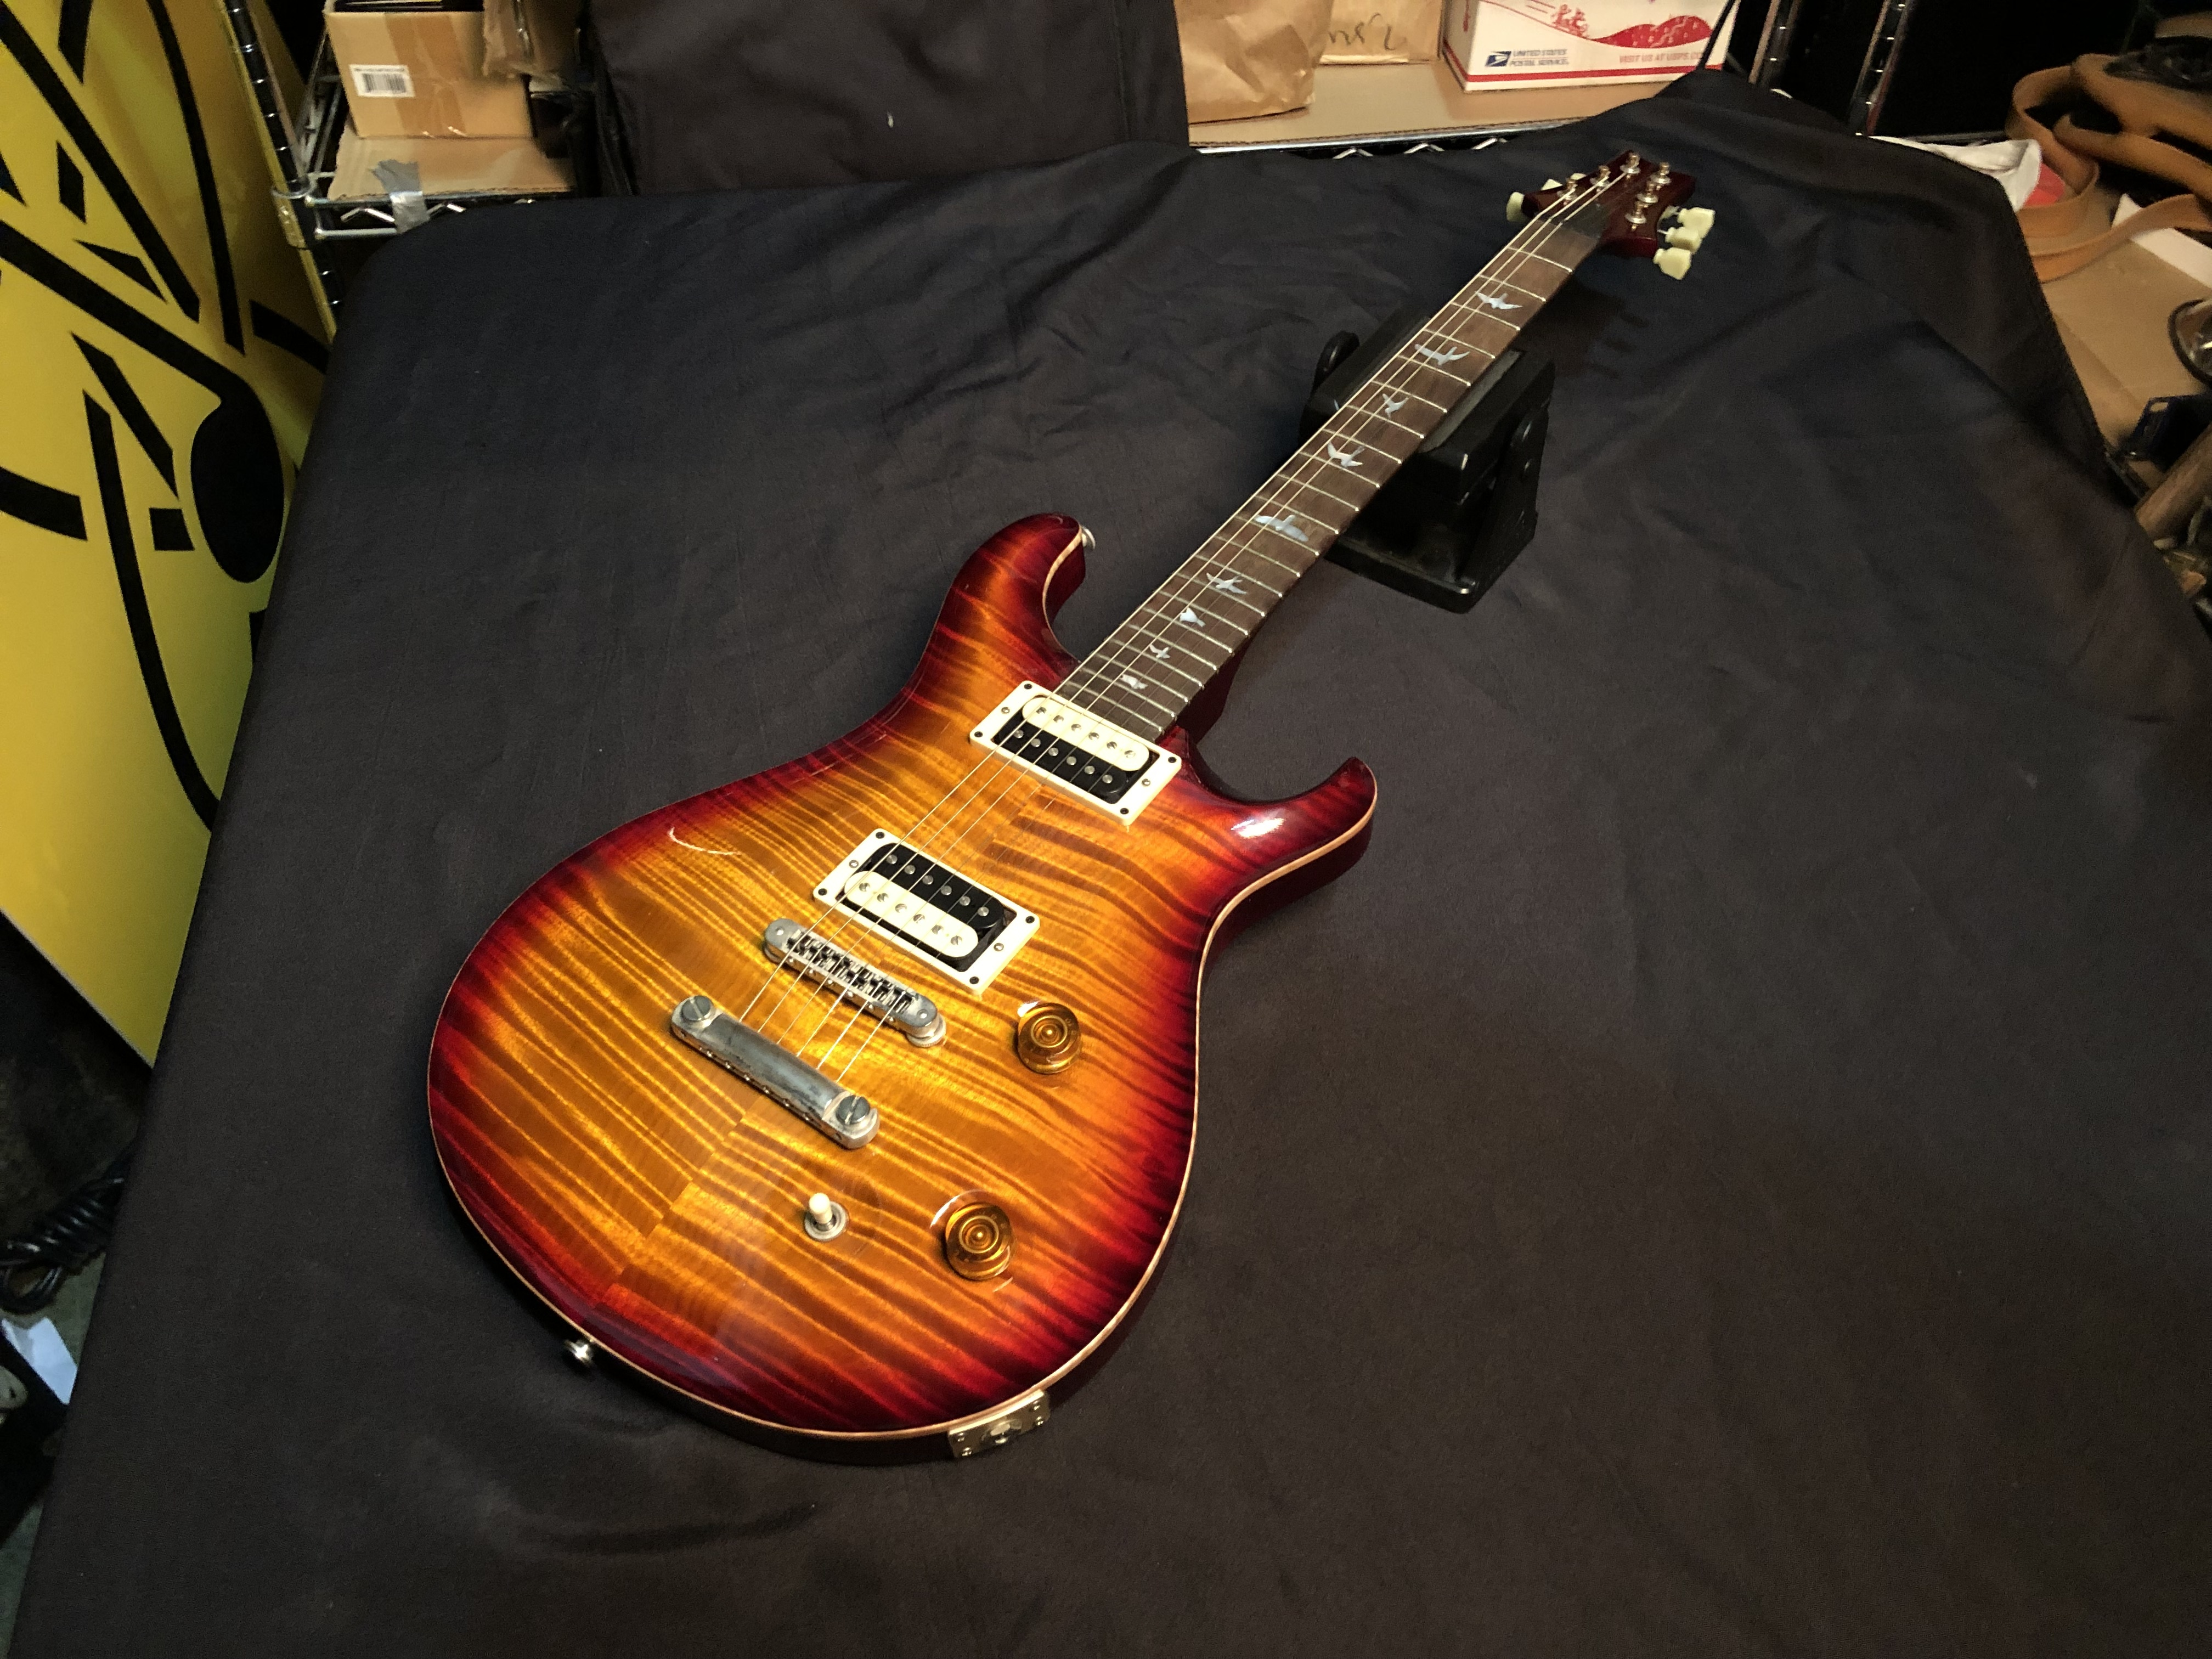 2009 PAUL REED SMITH PRS Dave's Guitar Shop Hand Selected CUSTOM 22 HSC